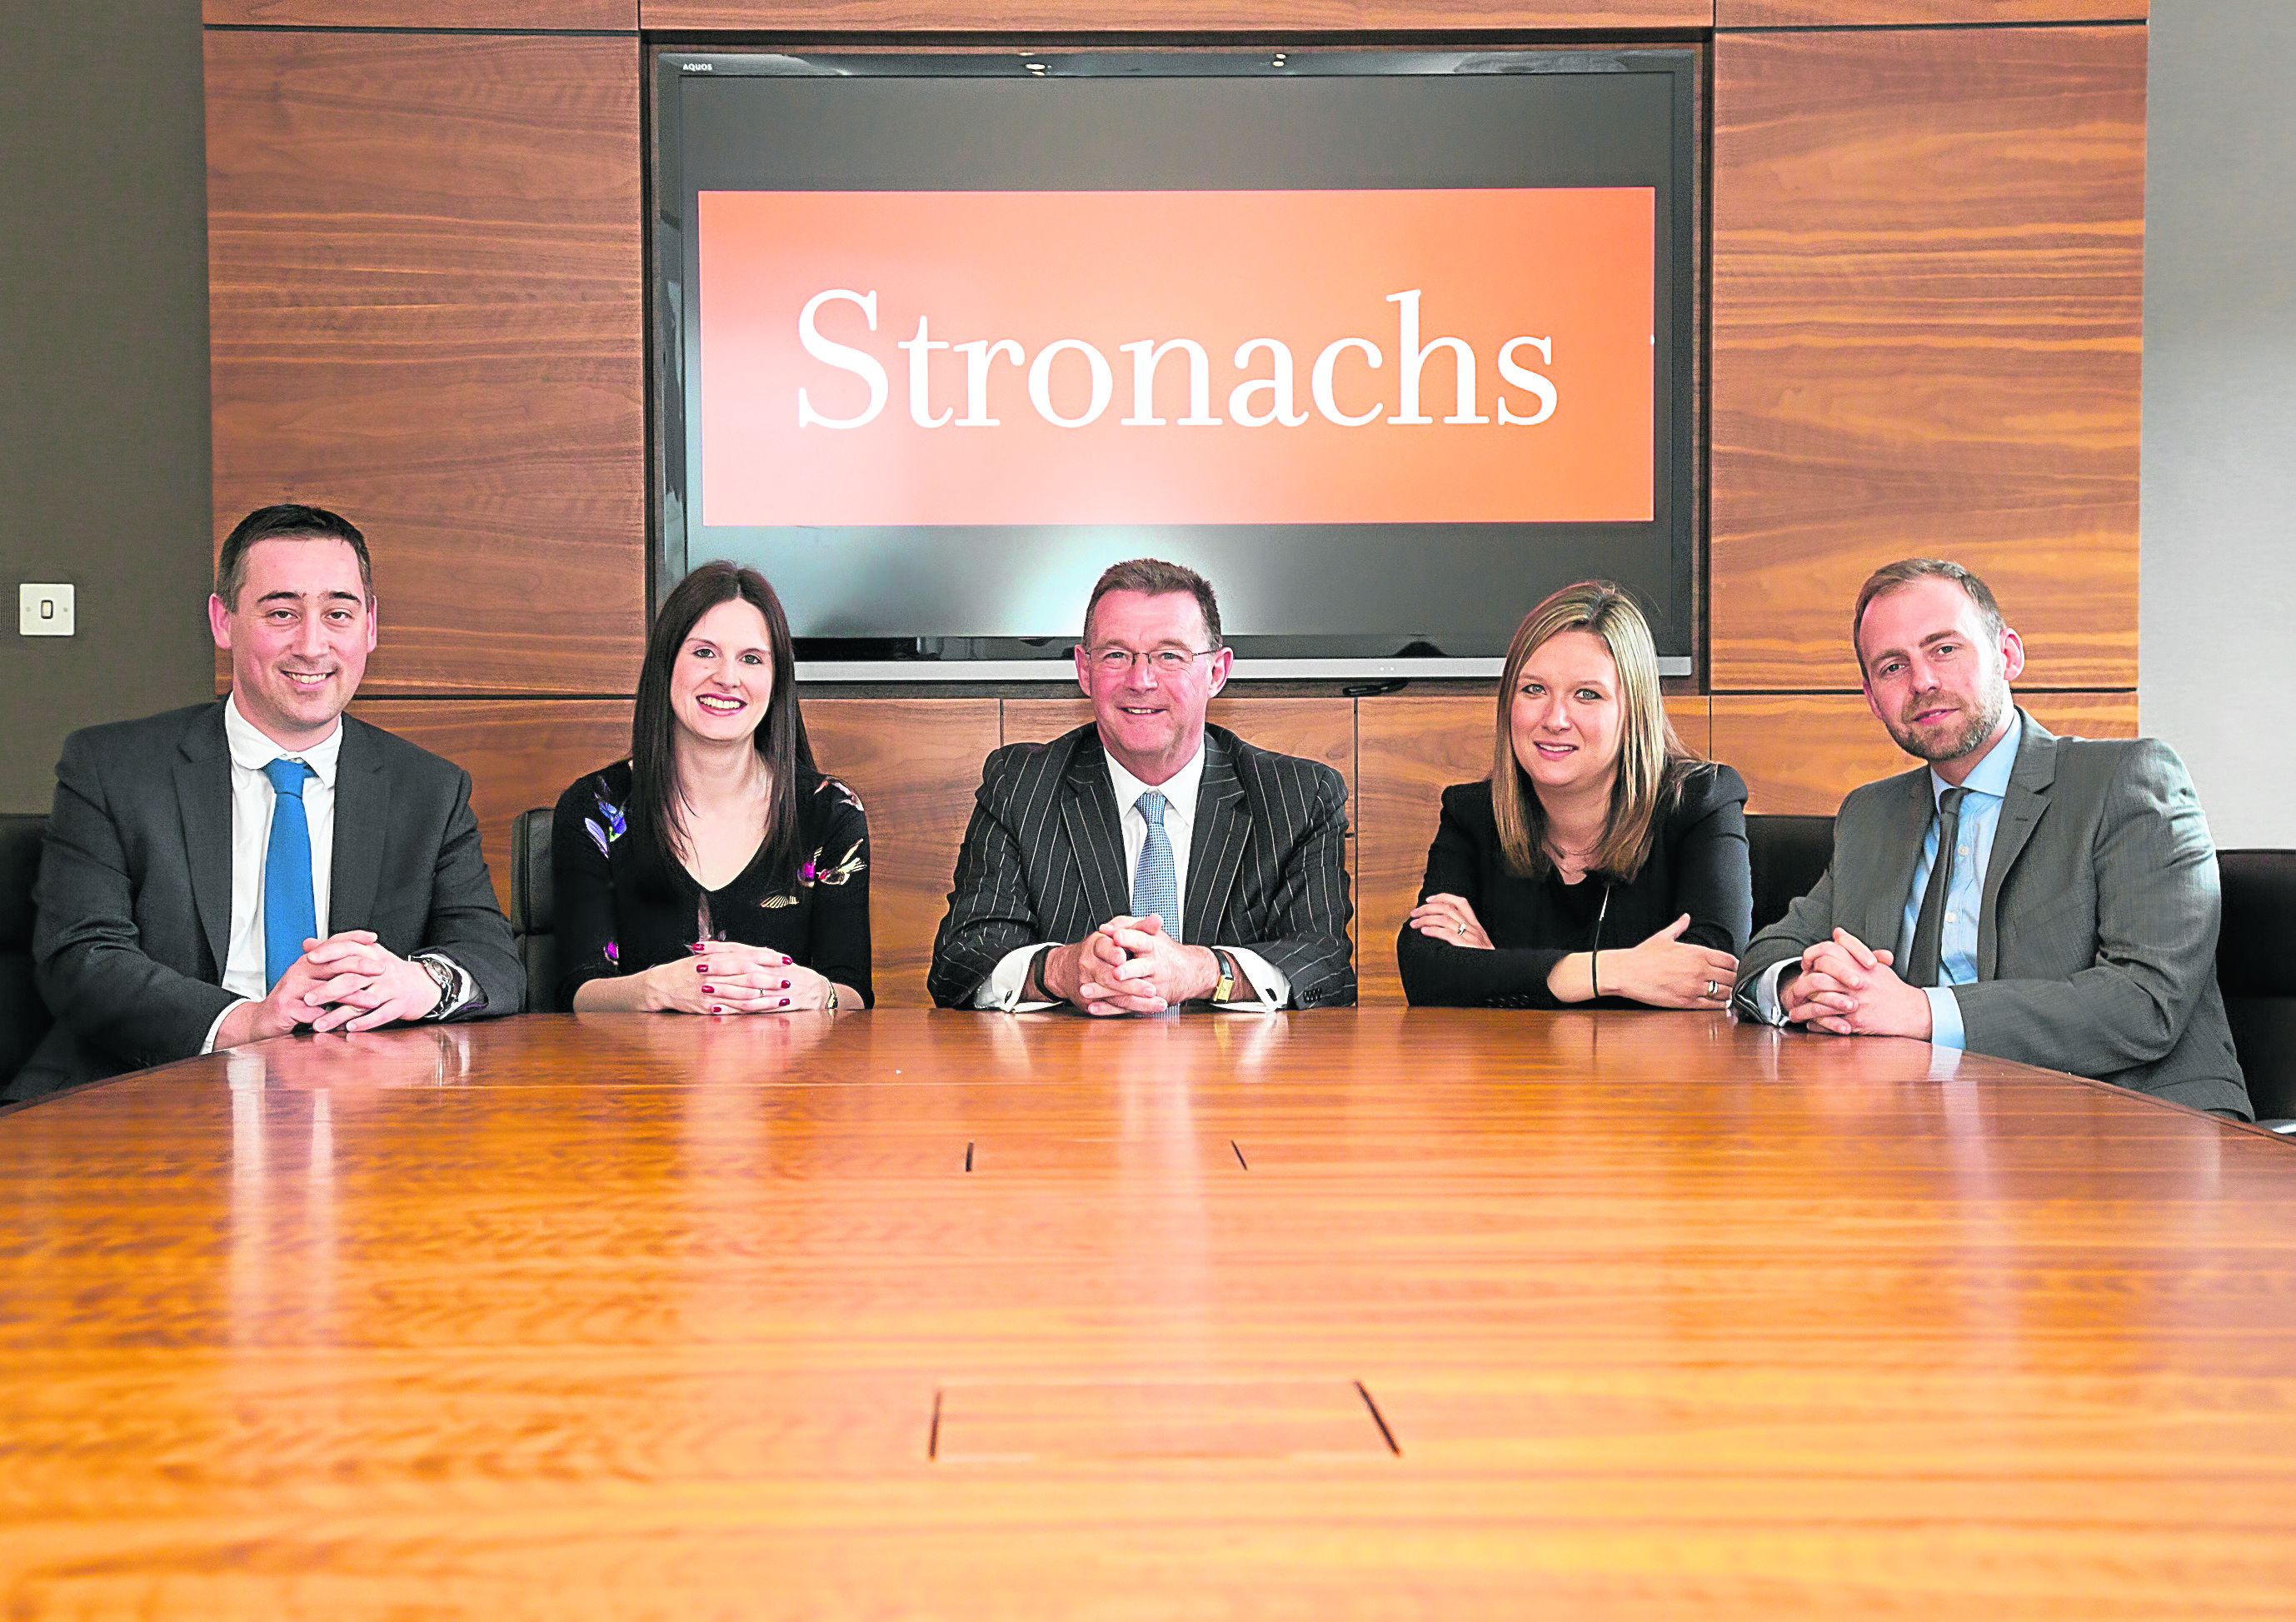 NEW HOME: From left, Ross Linn, Jaclyn Russell, David Rennie, Emma Stephen and Bob McDiarmid from Stronachs